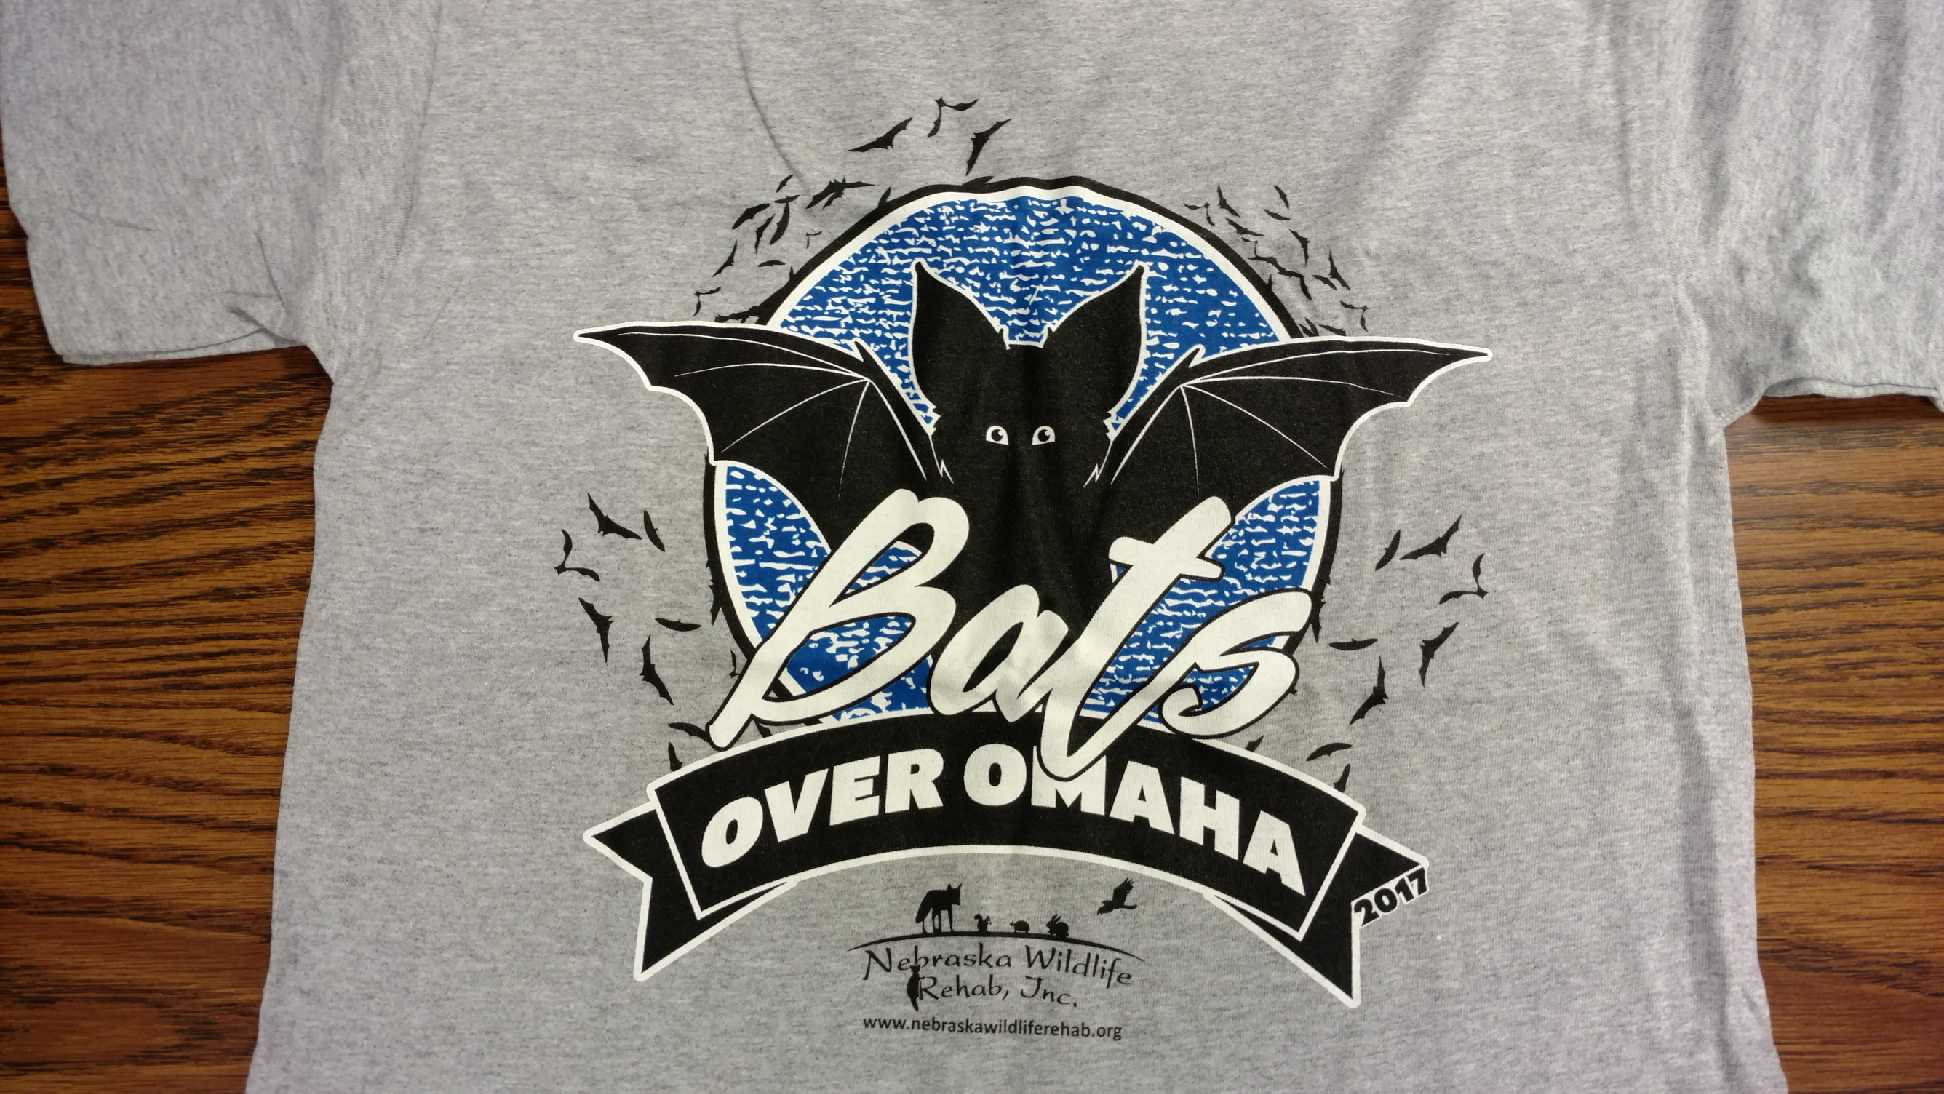 Bats Over Omaha Bat Release T-Shirt - 2017: Adult Medium, Gray